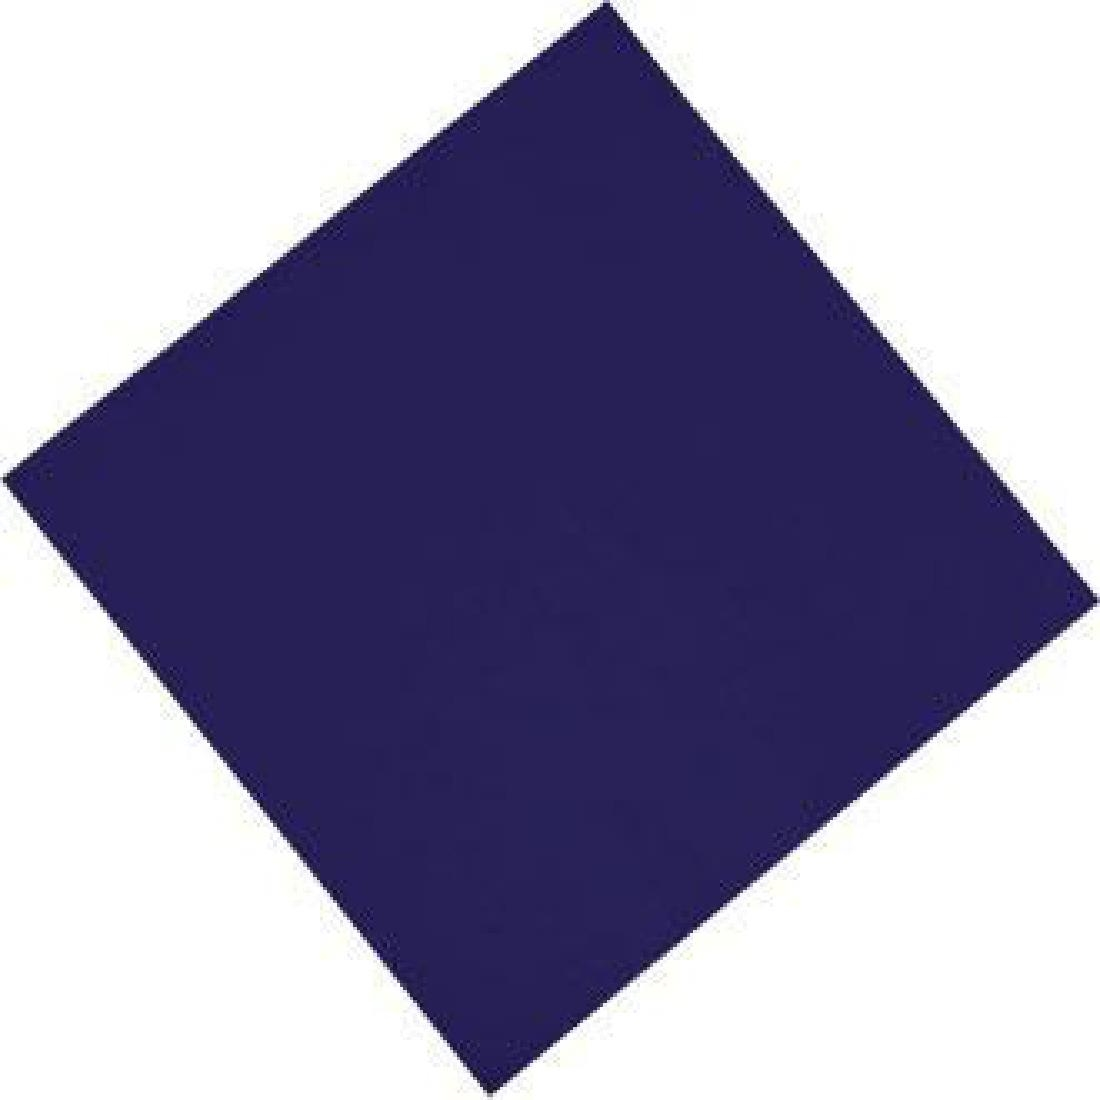 Image of Fasana Dinner Napkins Blue 400mm (Pack of 1000) Pack of 1000